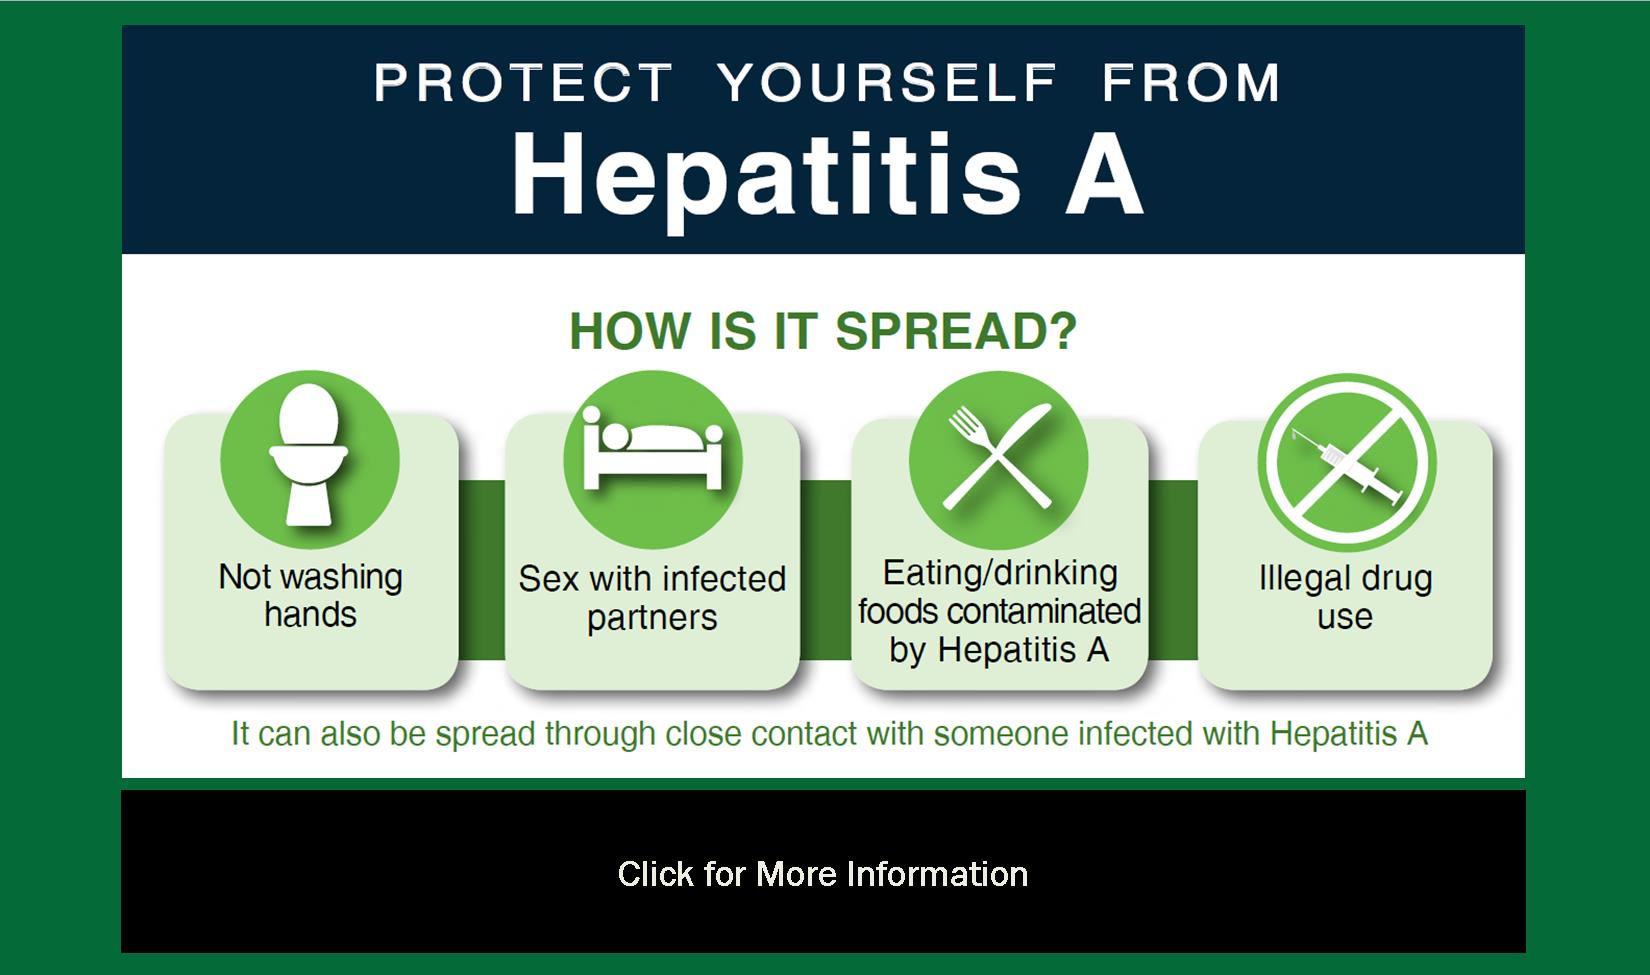 HEP A Infographic